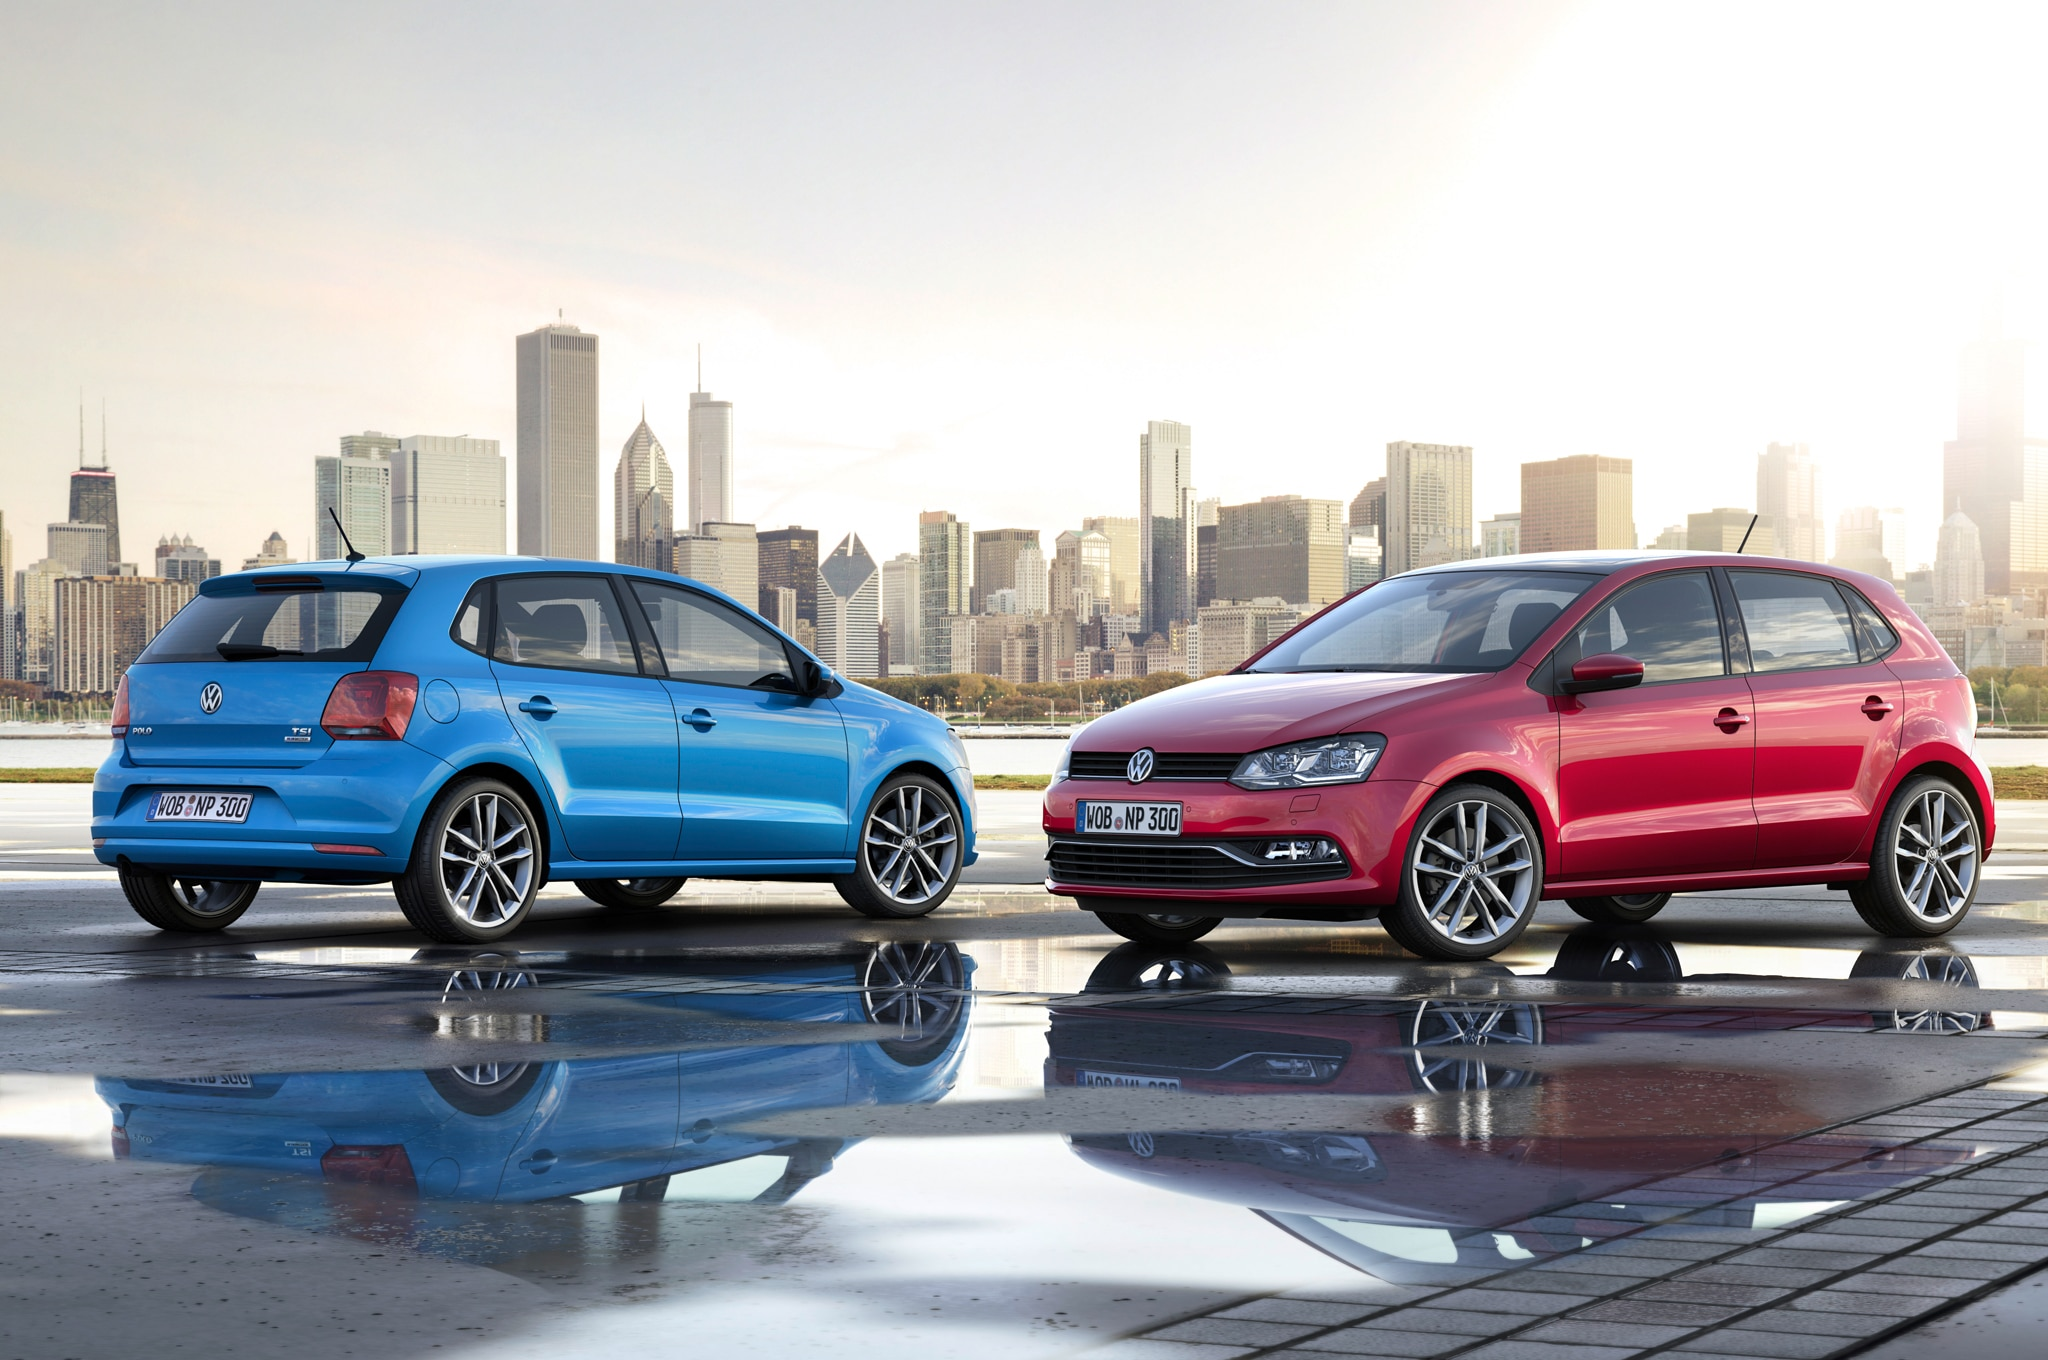 2015 Volkswagen Polo Rear And Front View1